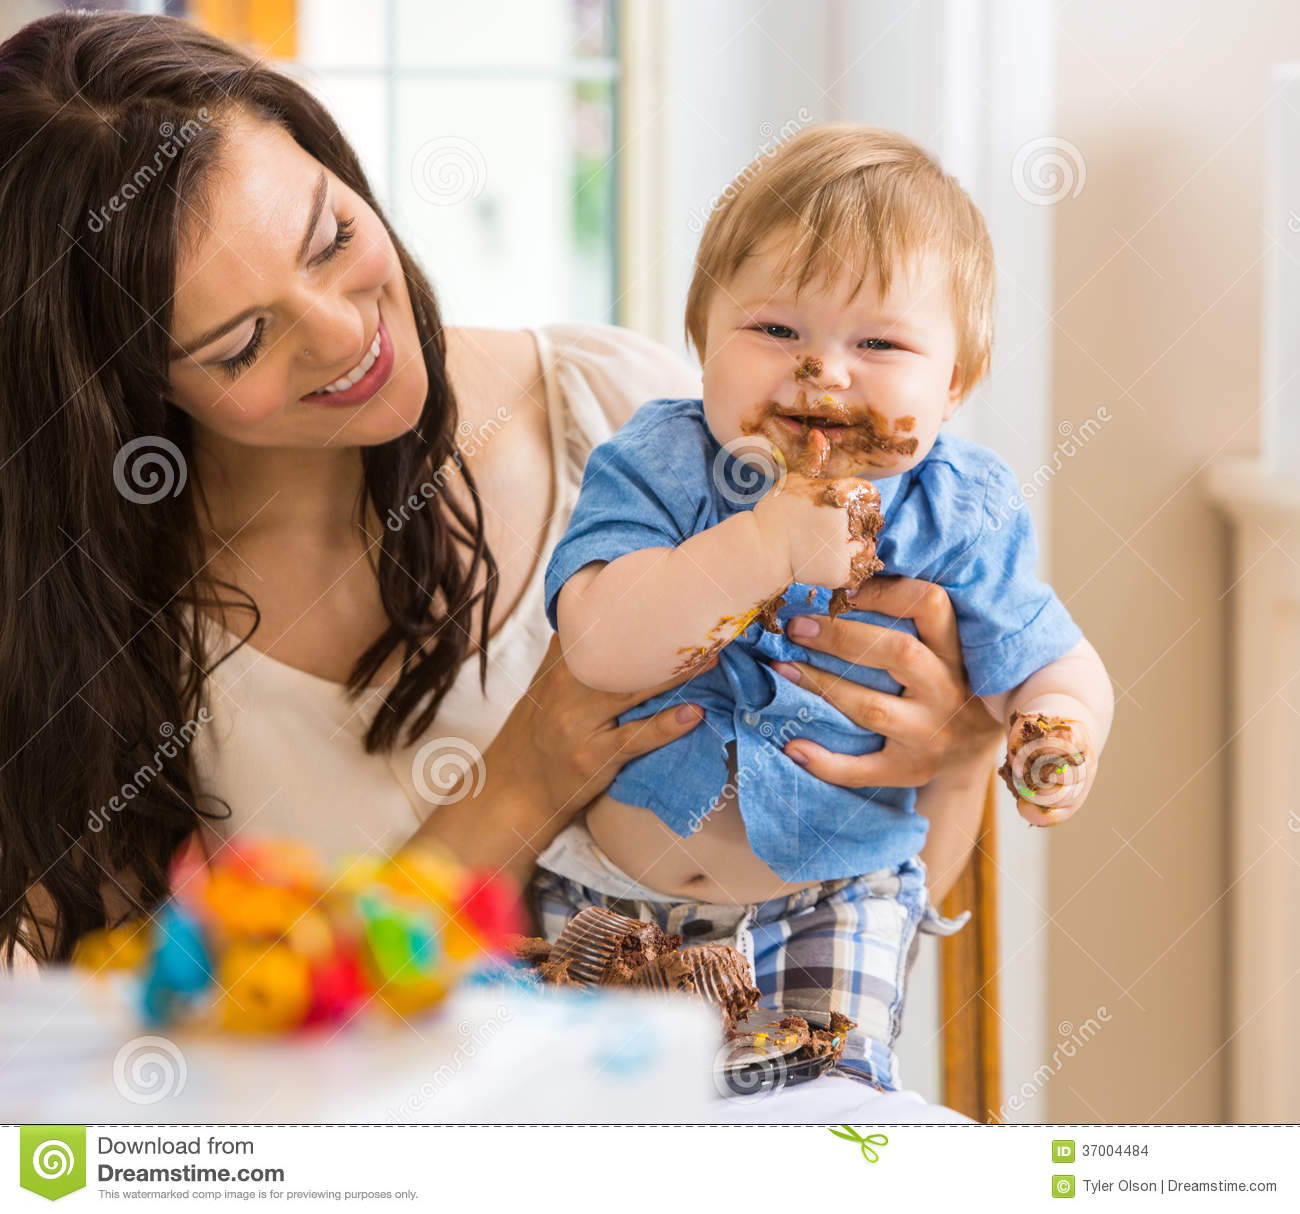 Baby Eating Cake Clipart : Mother Holding Baby Boy Eating Cake With Icing On Stock ...